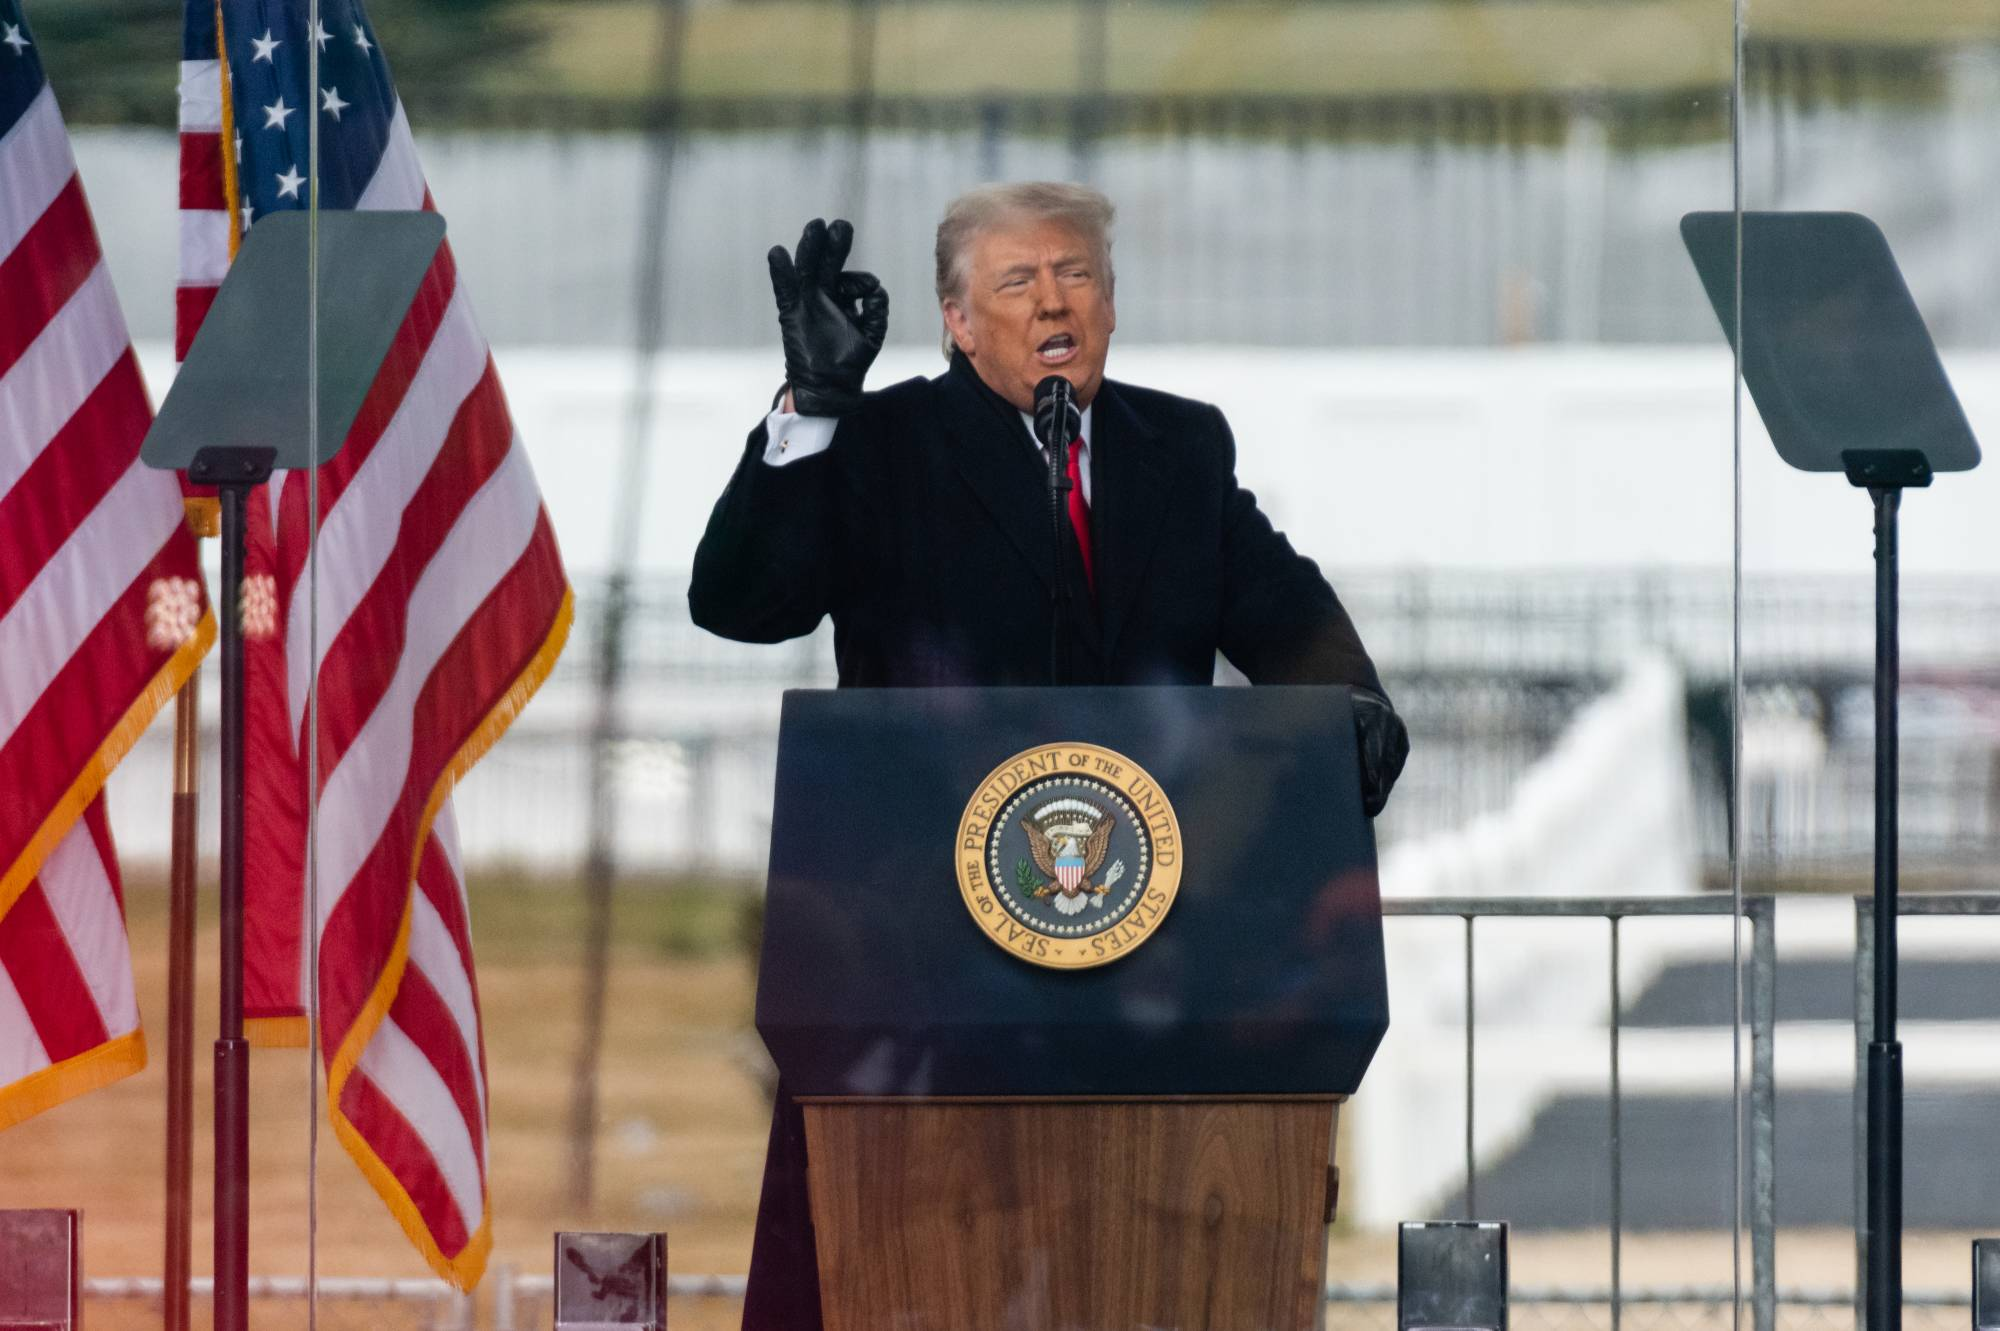 U.S. President Donald Trump speaks during the 'Save America Rally' near the White House in Washington on Wednesday. | BLOOMBERG